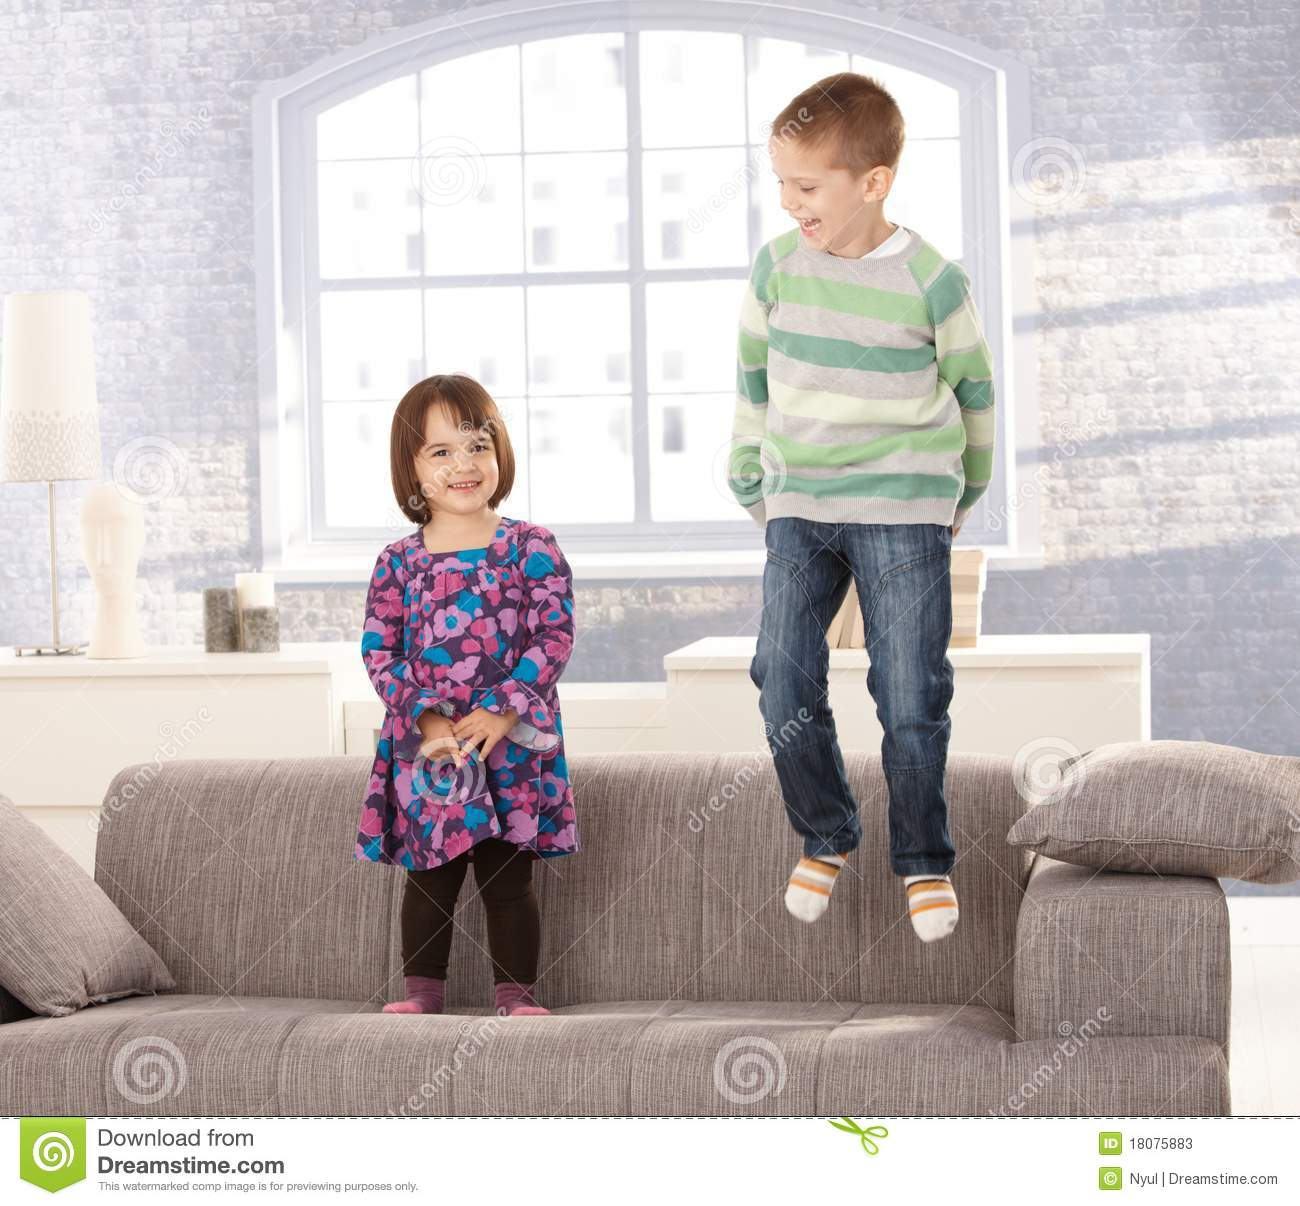 120 Kids Jumping Sofa Photos Free Royalty Free Stock Photos From Dreamstime